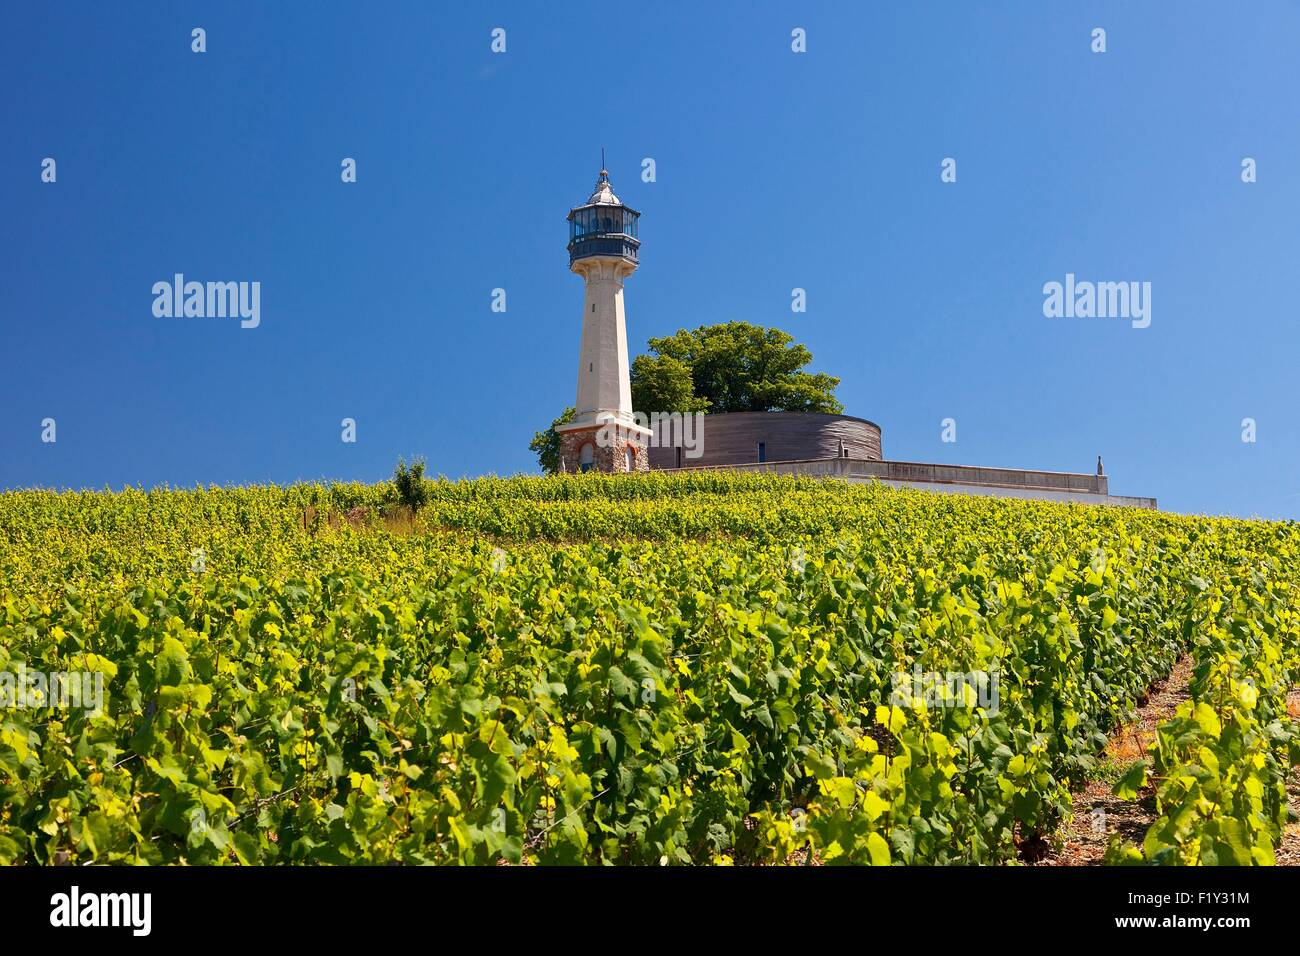 France, Marne, regional park of Montagne de Reims, Lighthouse of Verzenay - Stock Image